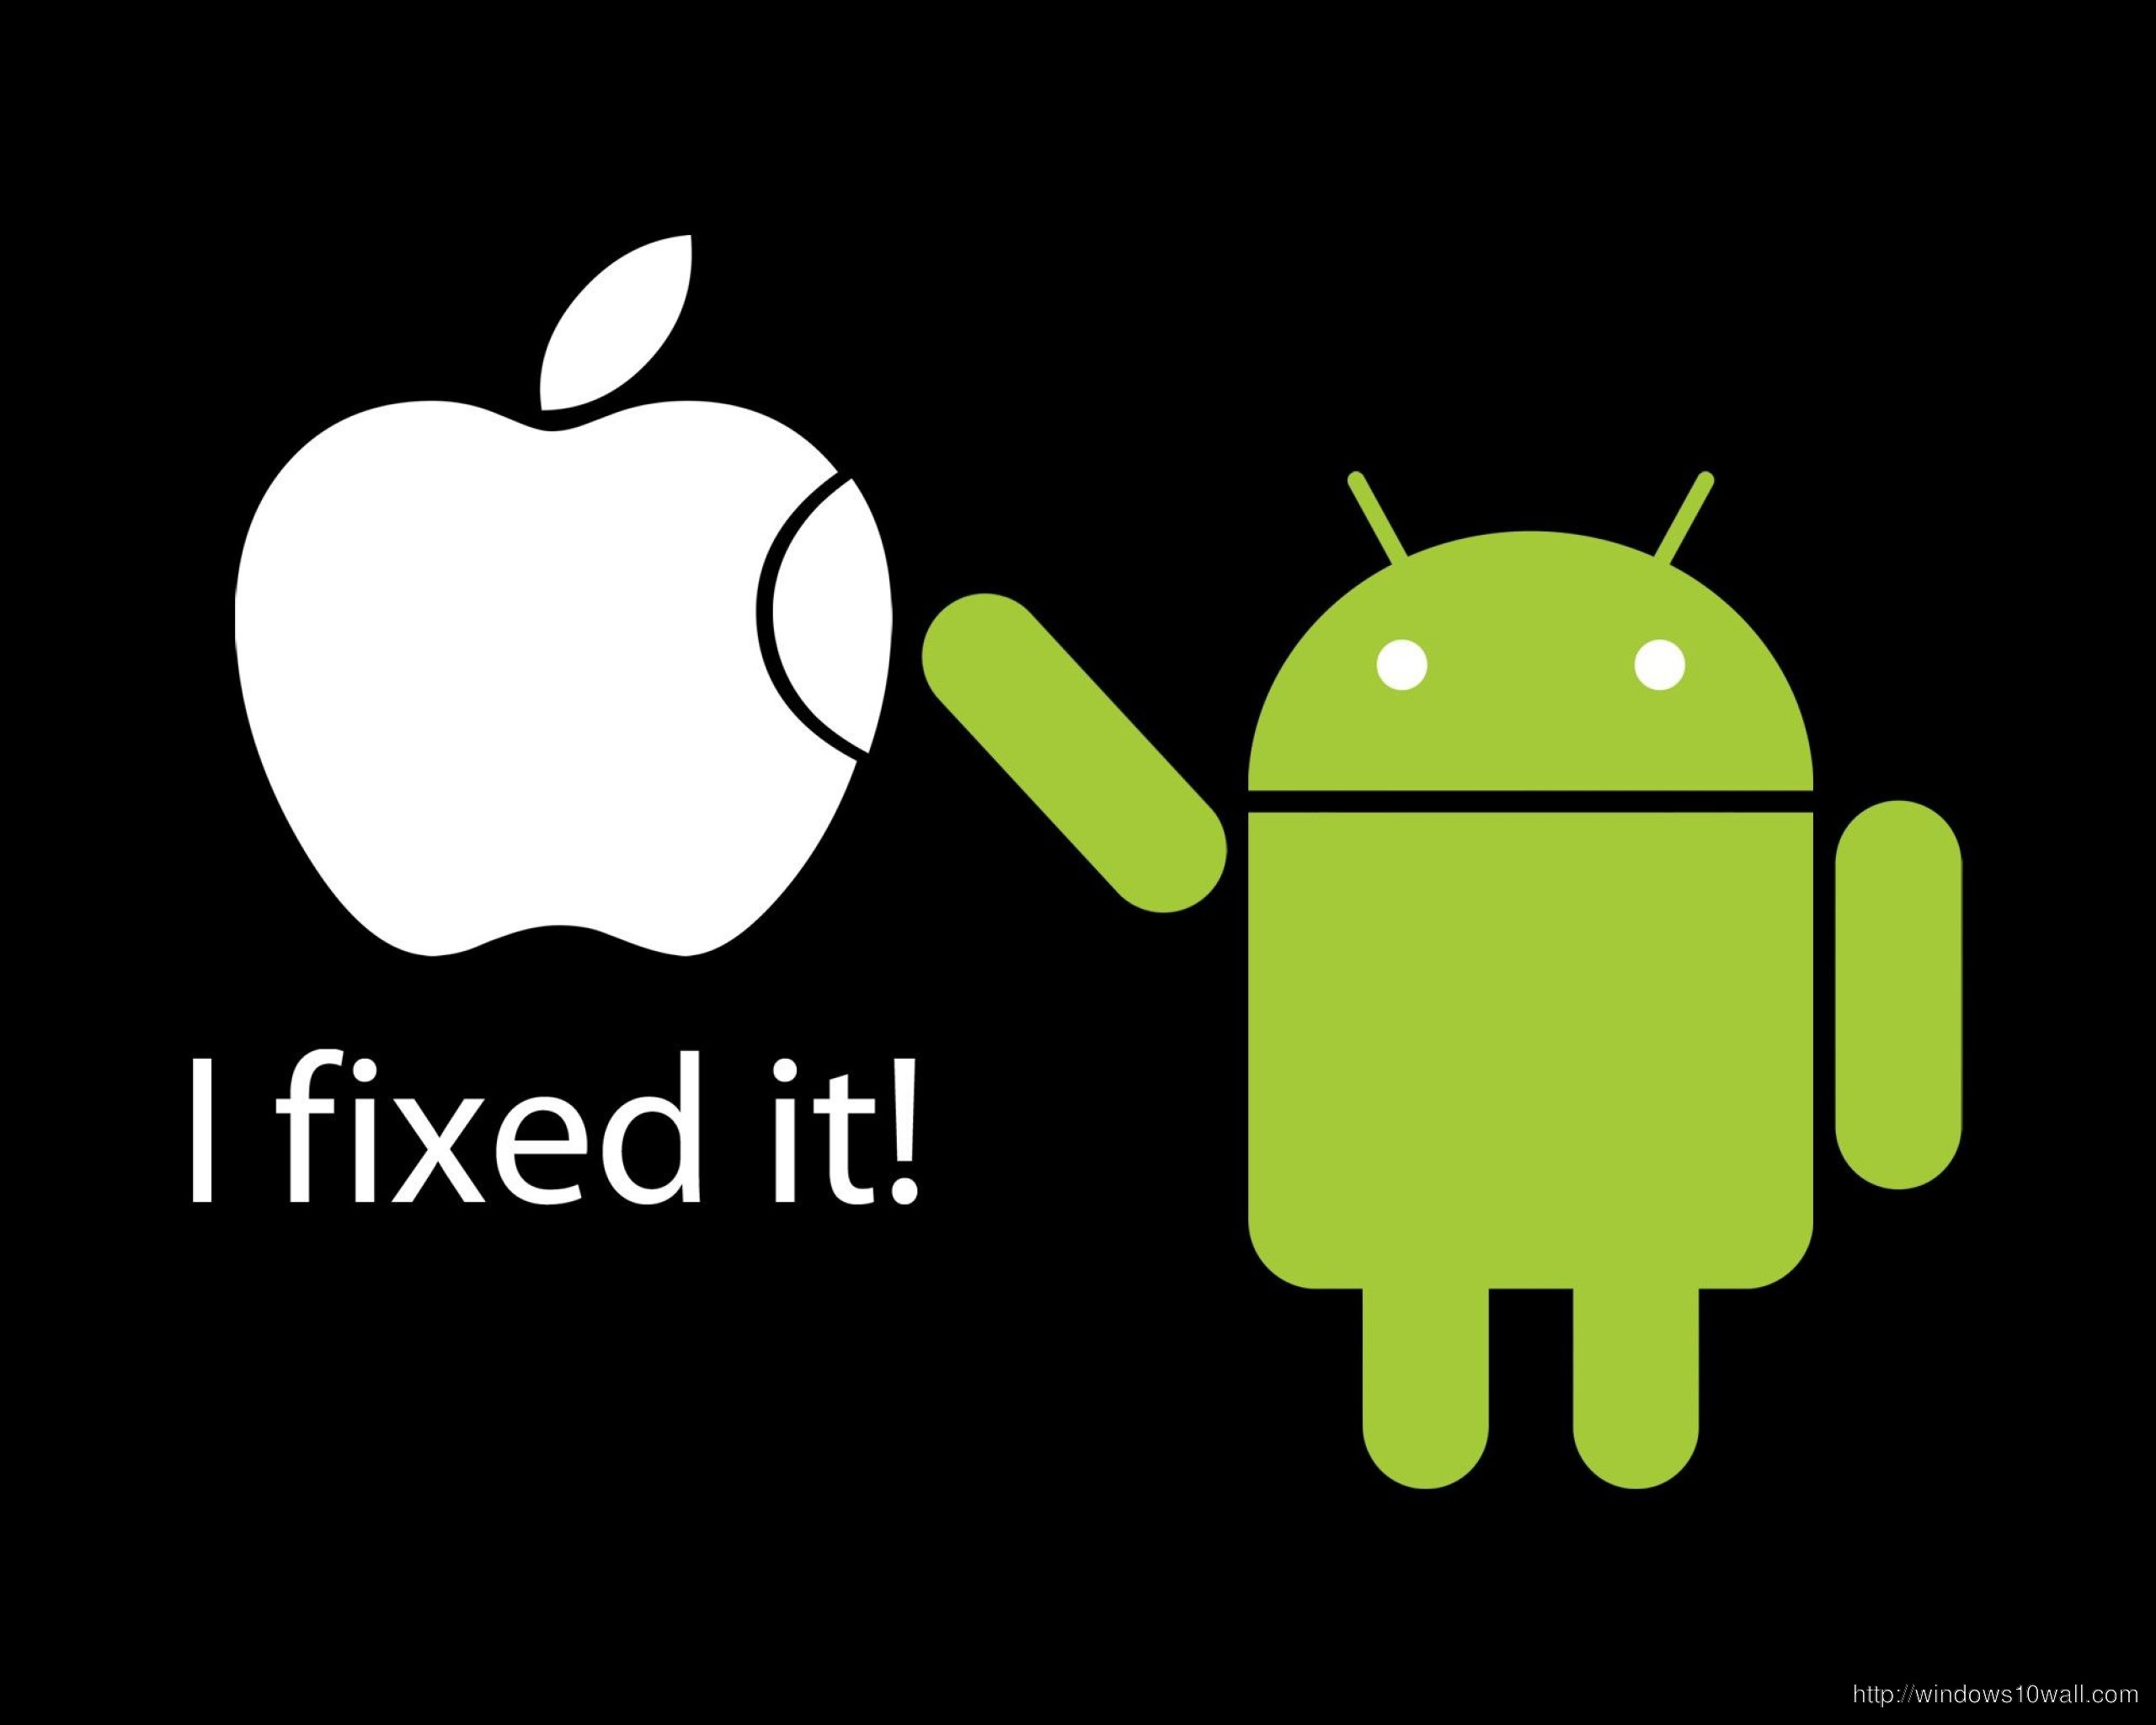 funny-android-fixing-apple